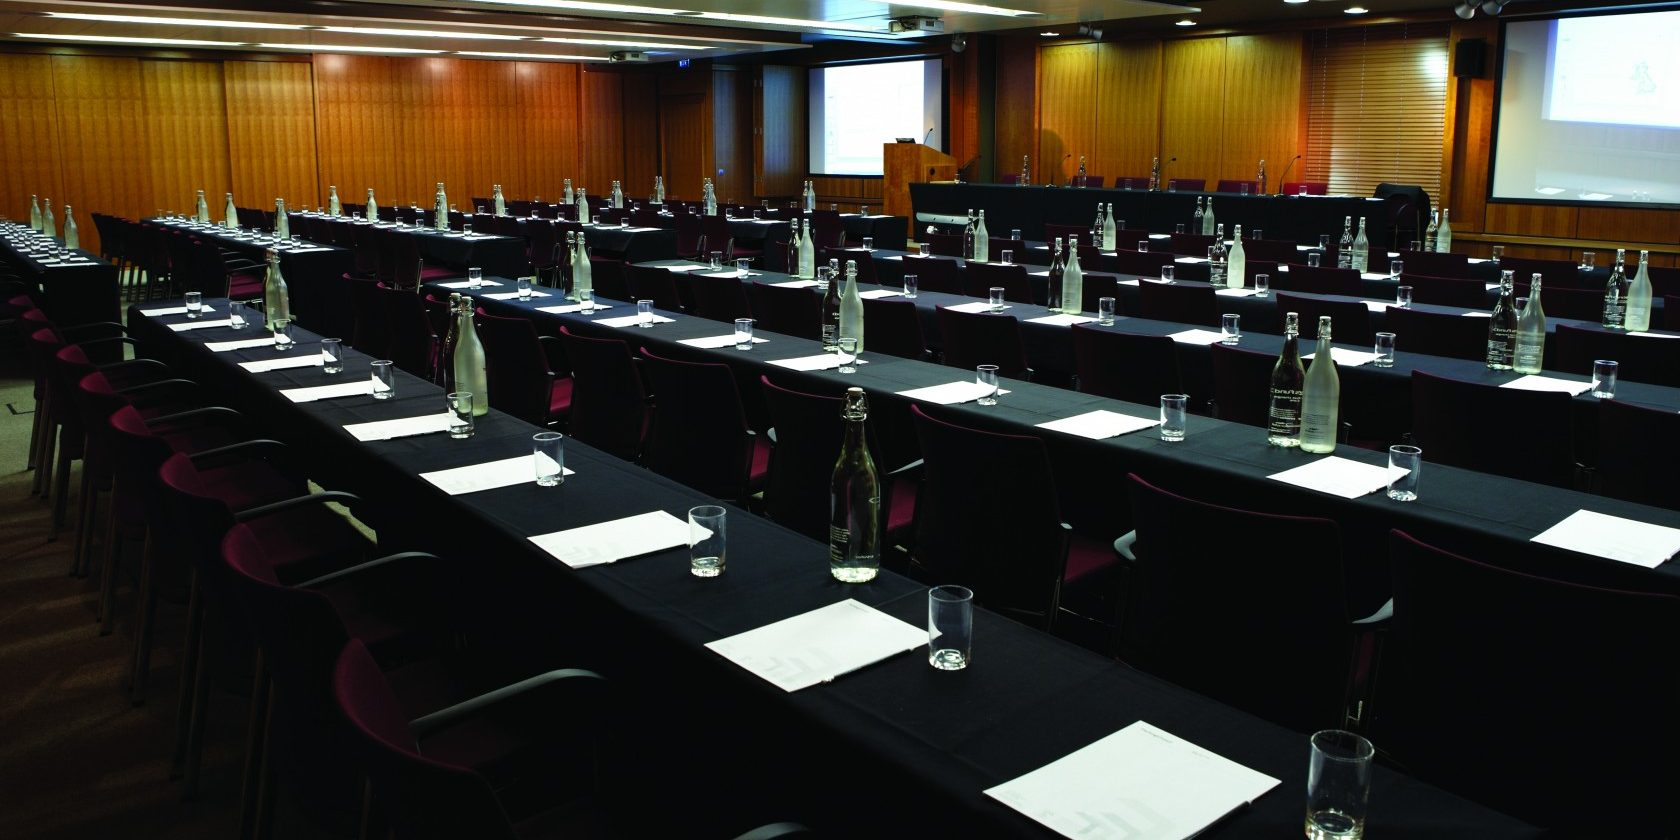 Event seating arrangements: What's the best for your event